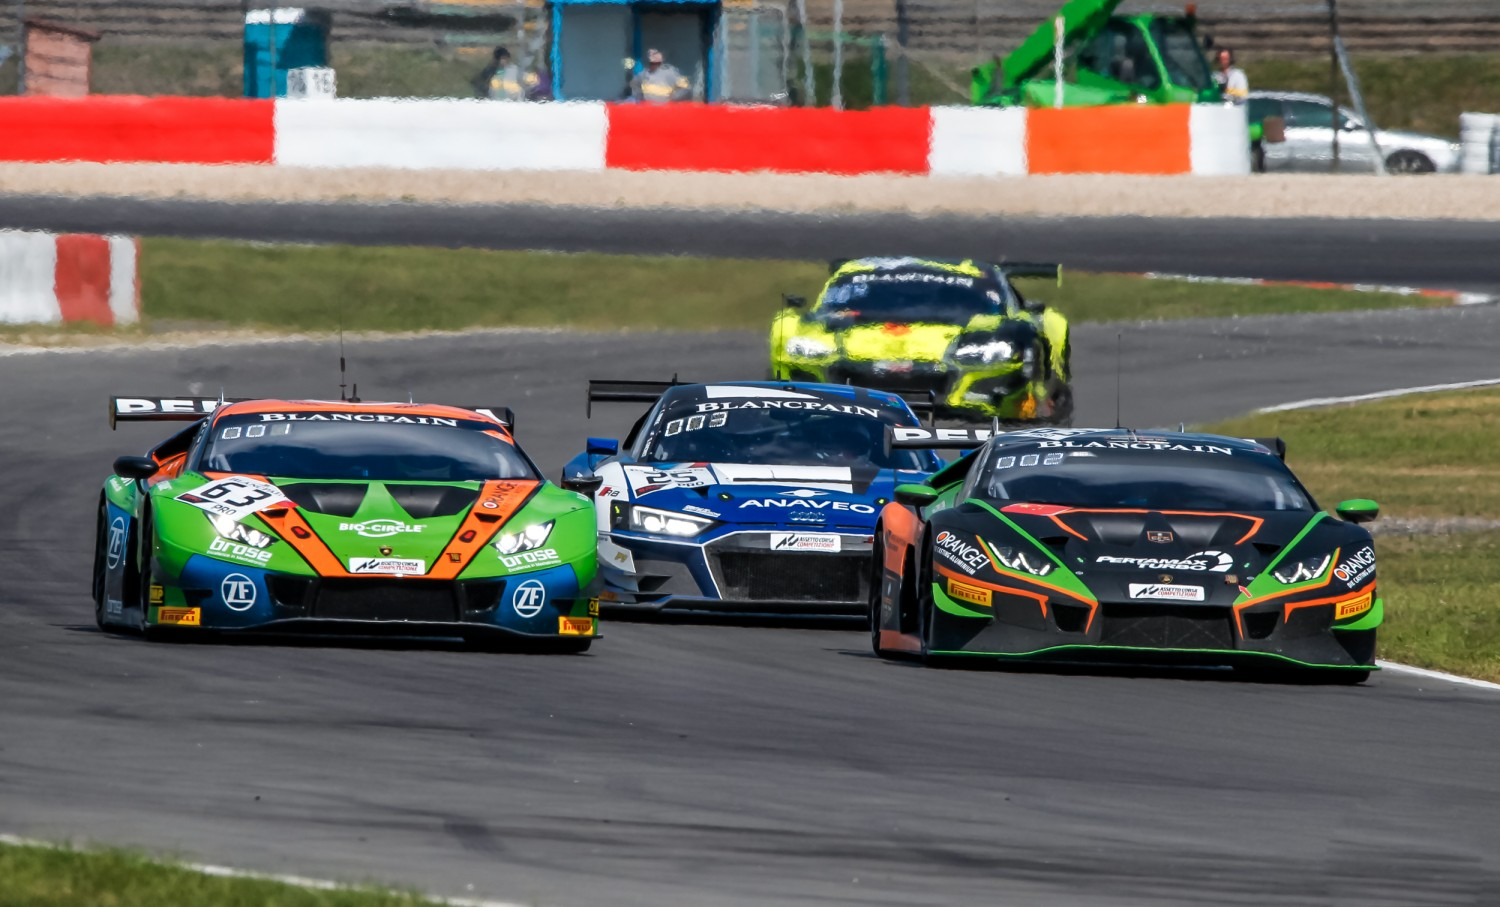 Caldarelli and Mapelli seize championship advantage as Orange1 FFF Racing Lamborghini wins thrilling Nürburgring battle